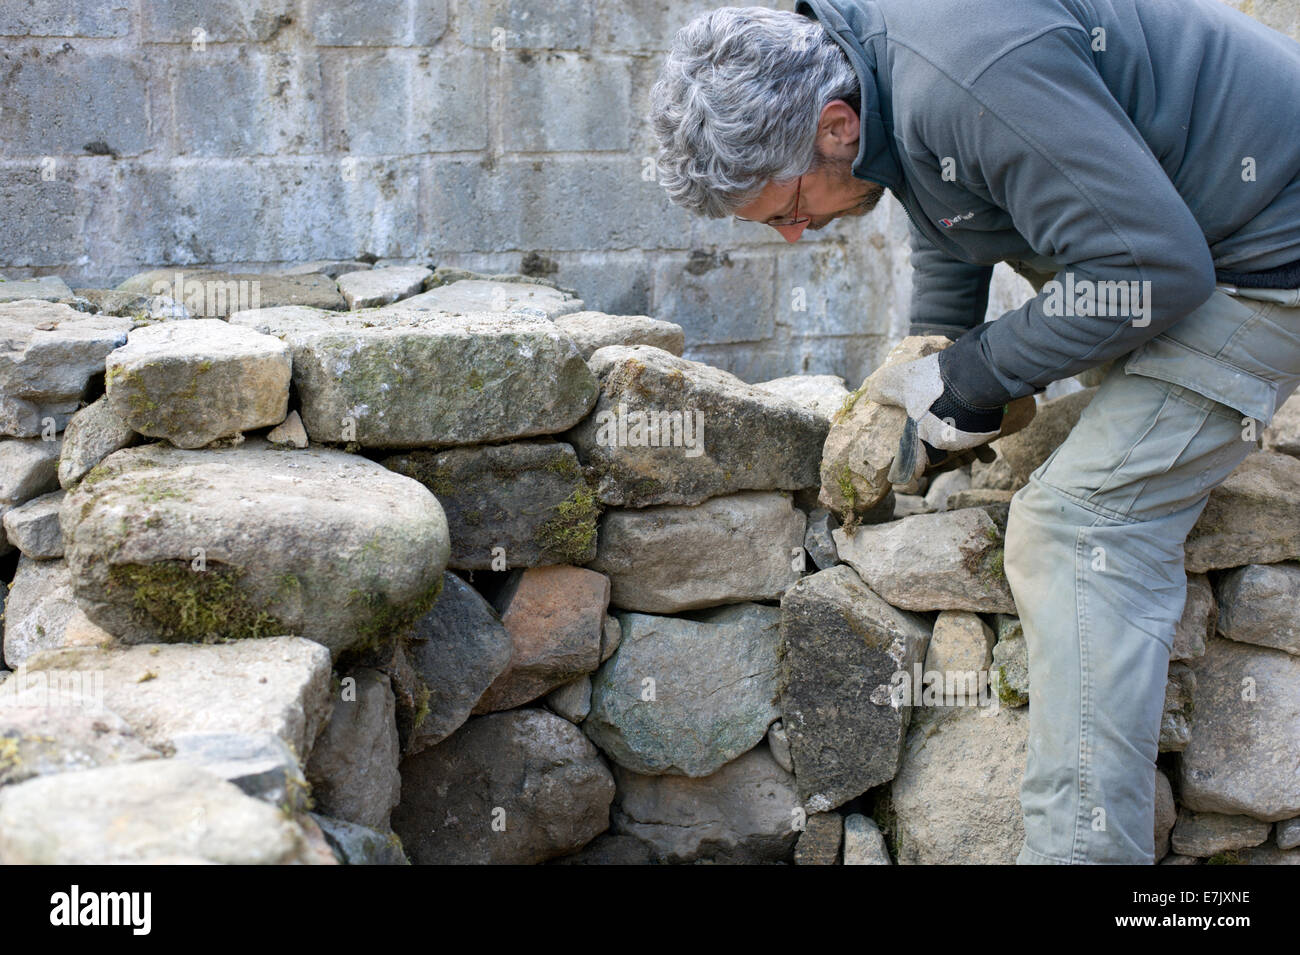 Preparatory work for building an earth oven building the for How to build a stone house yourself